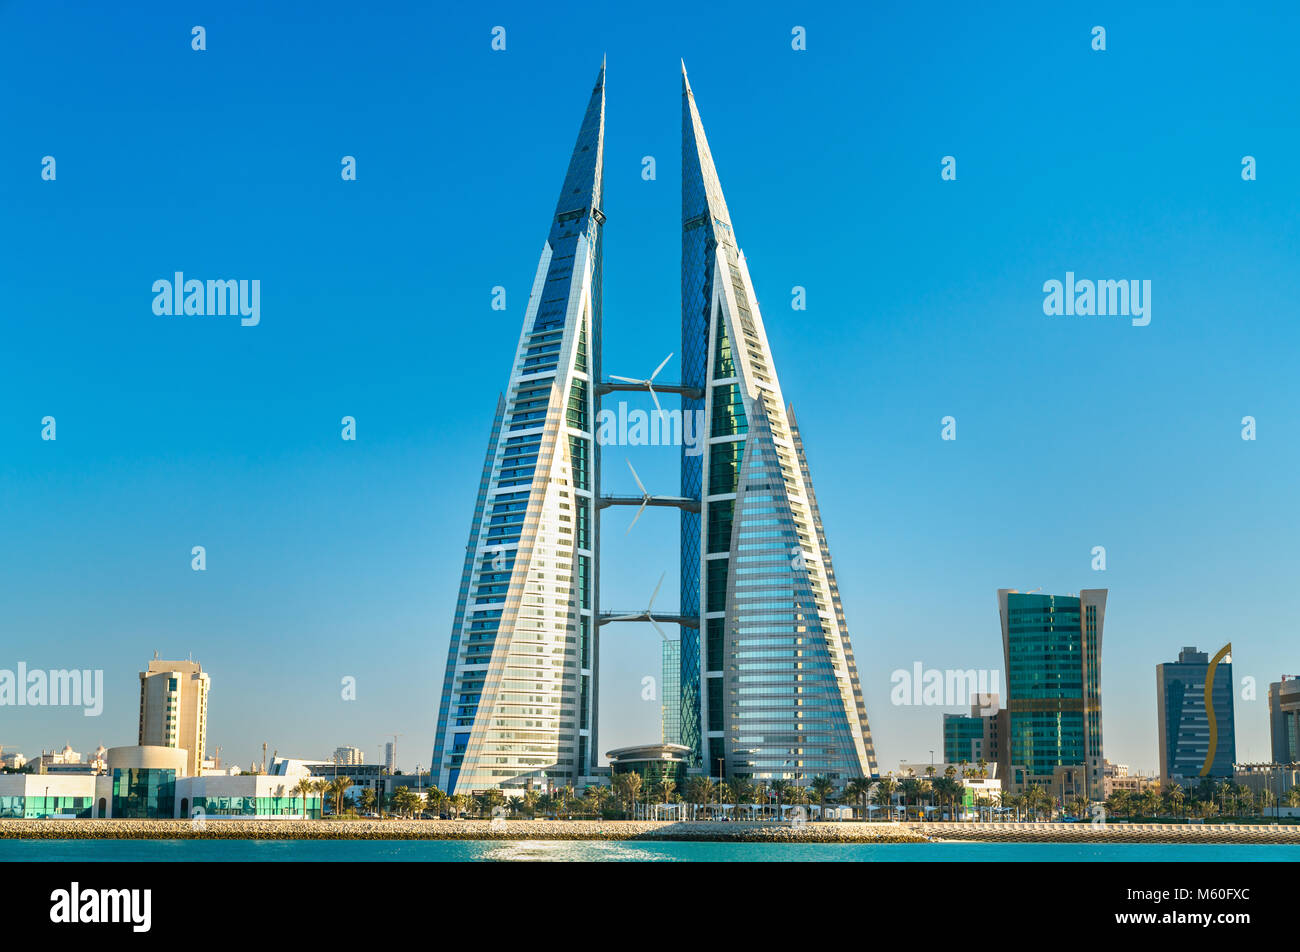 Bahrain World Trade Center in Manama. The Middle East - Stock Image